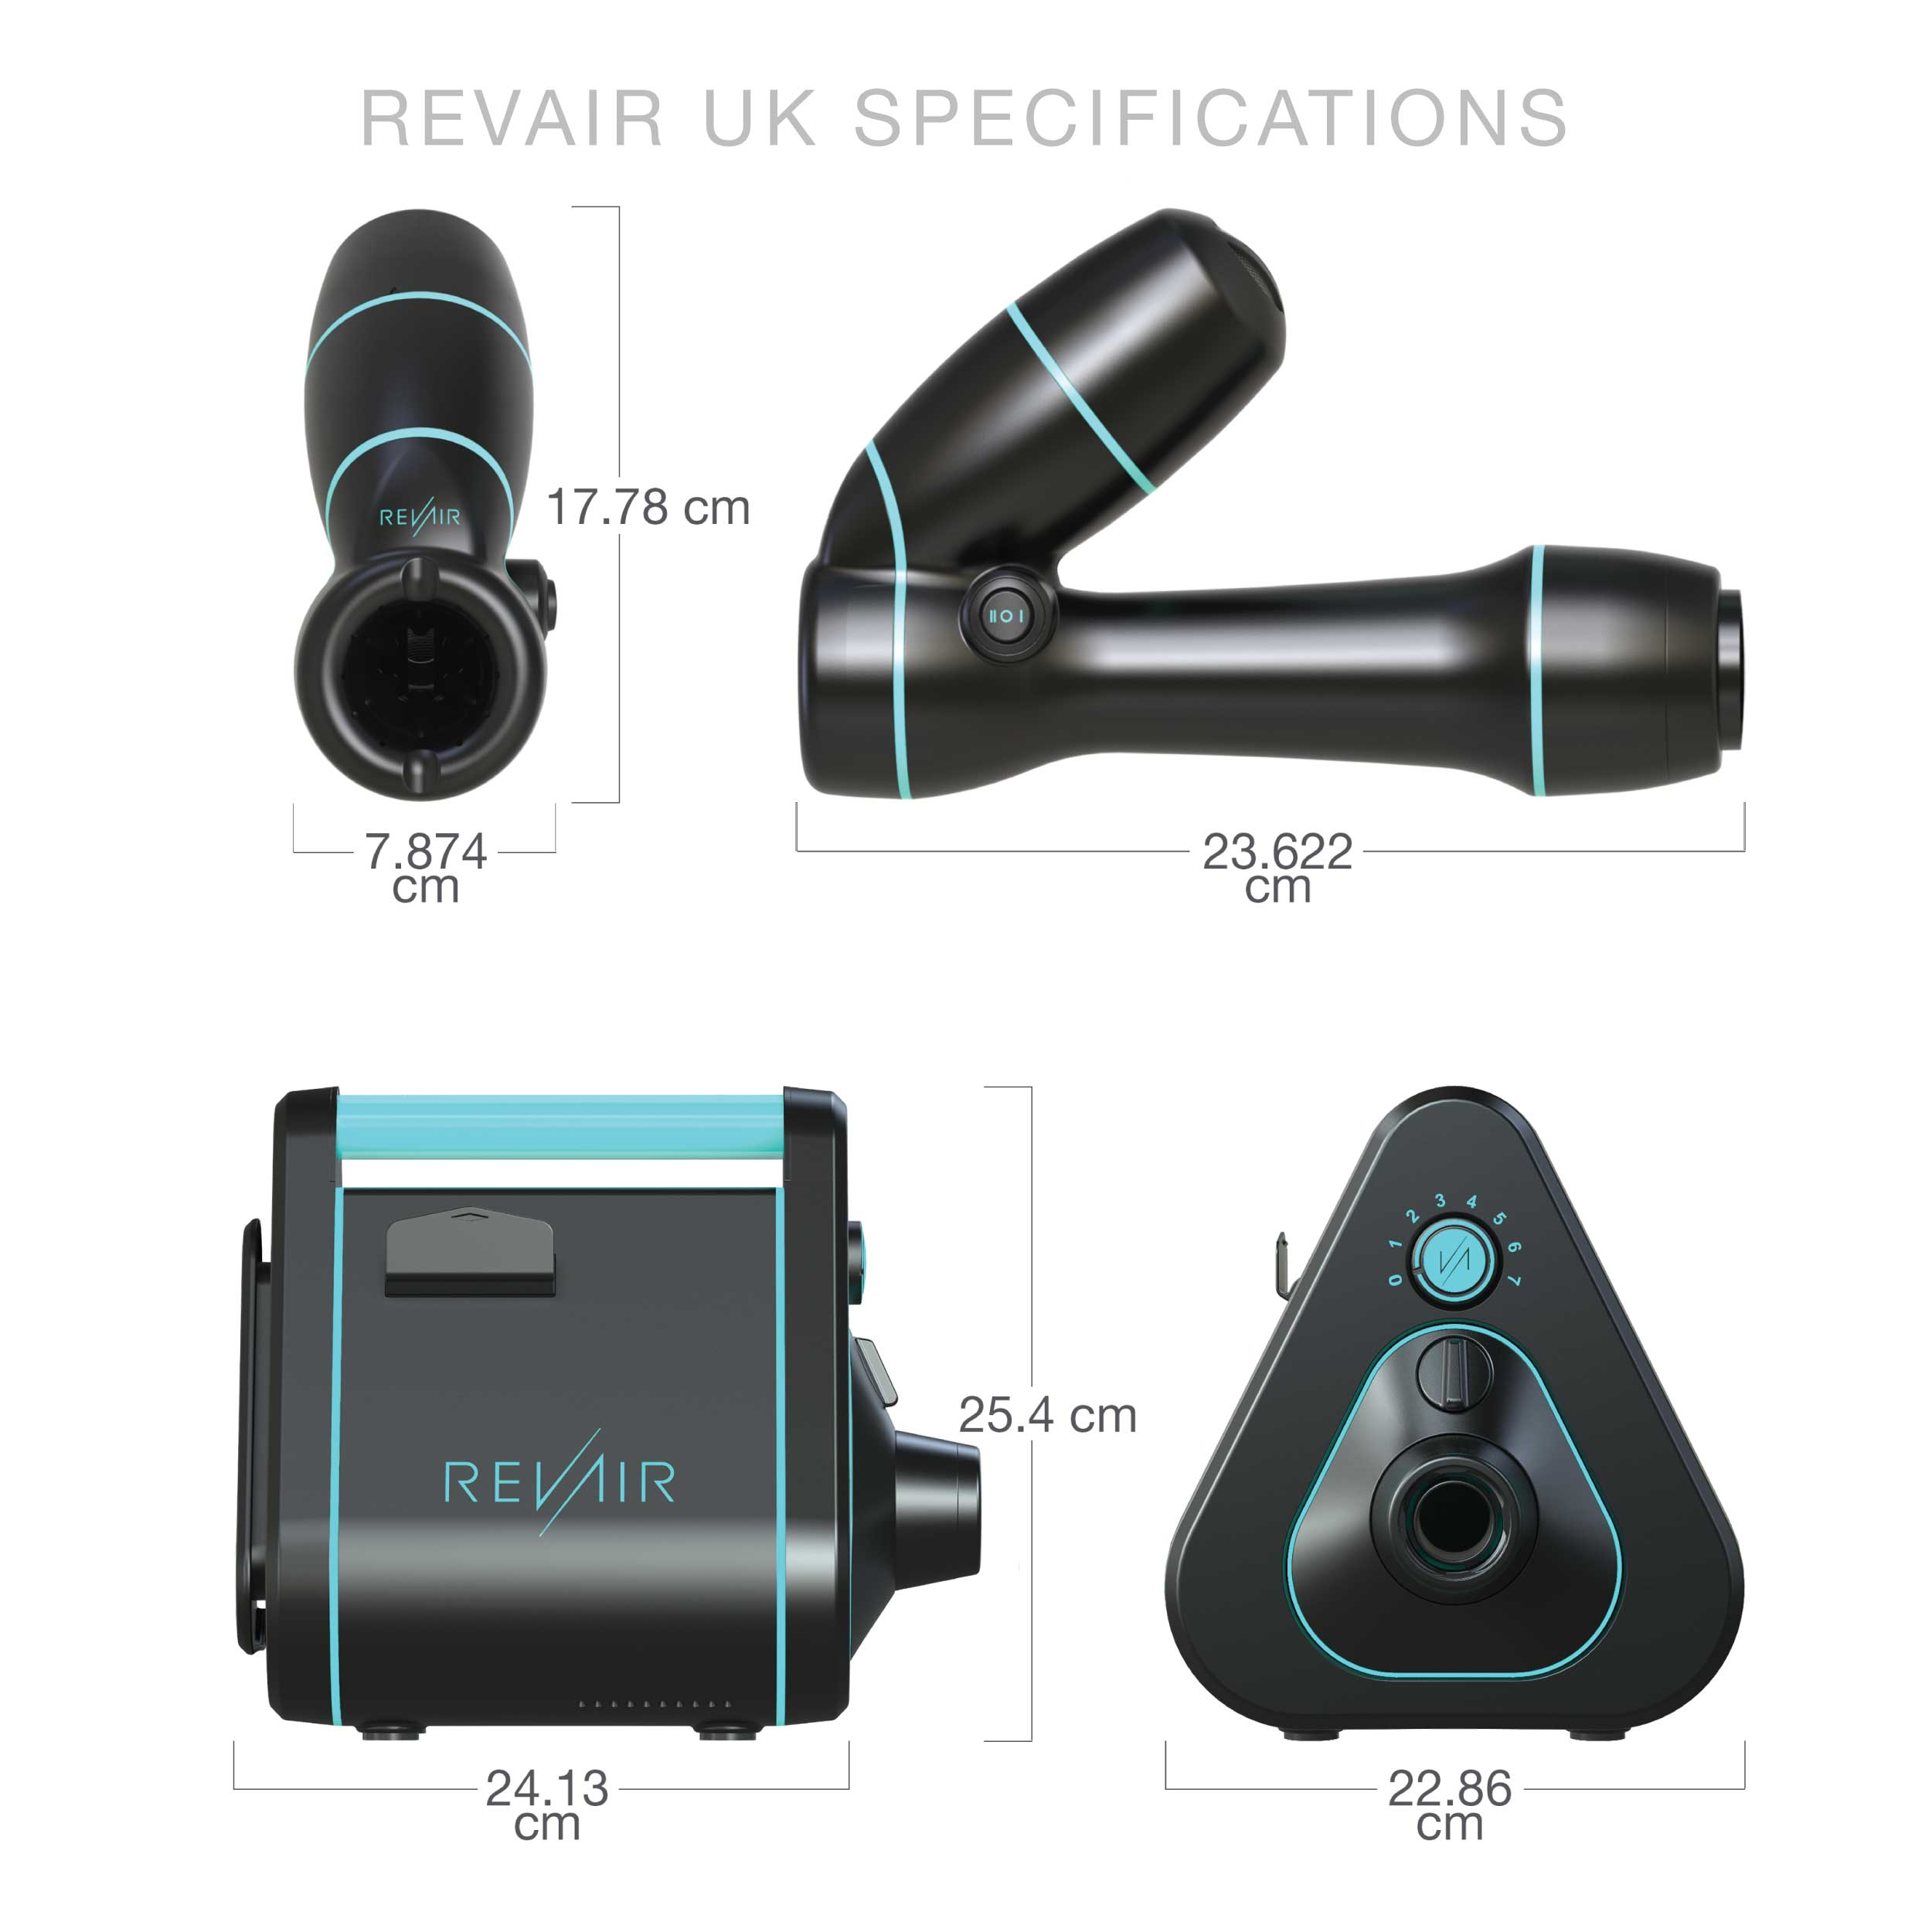 RevAir UK Technical Specifications